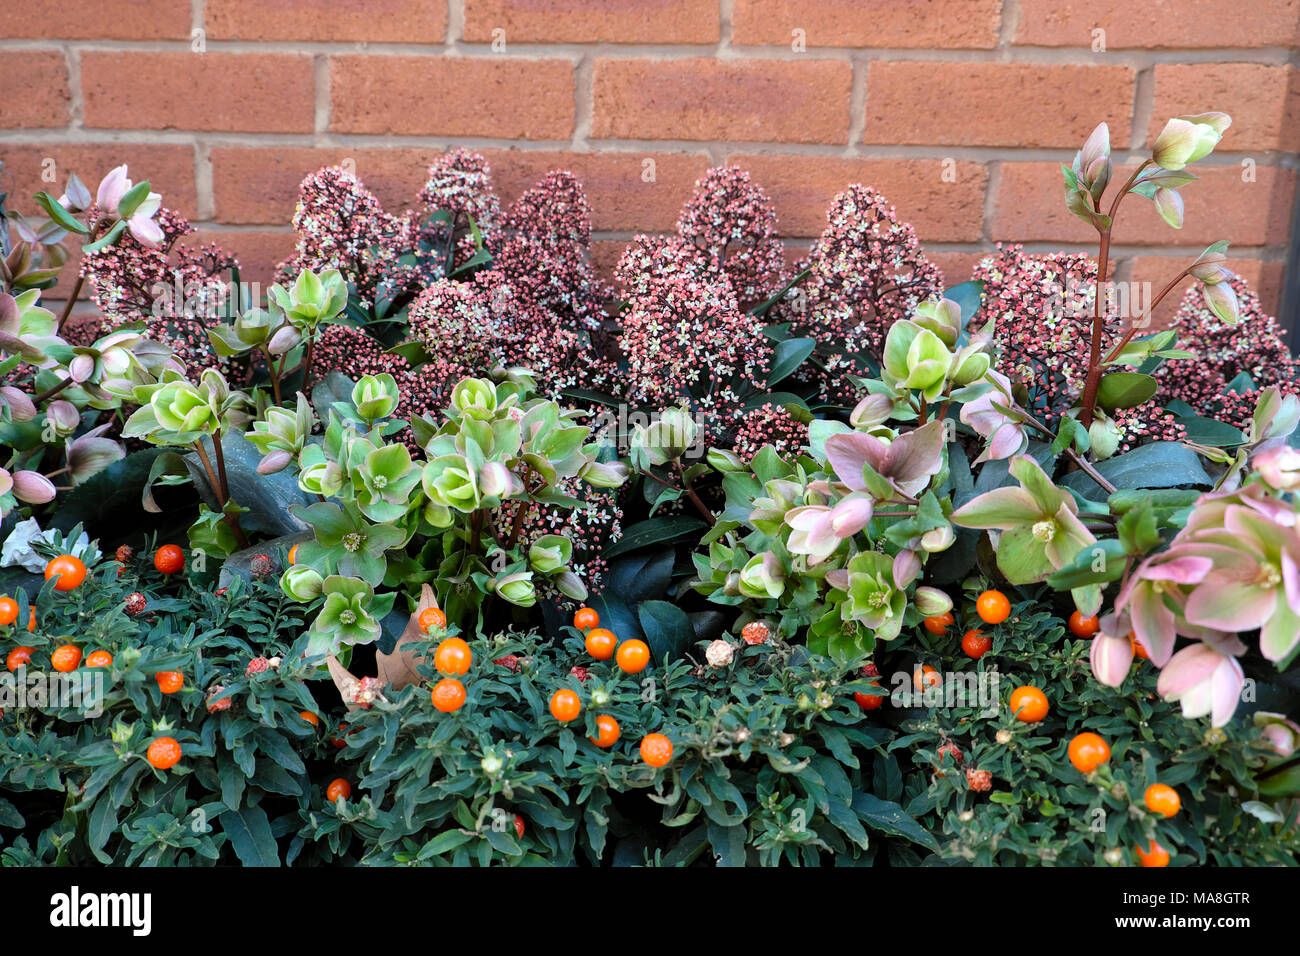 Winter window box plants Hellebore, Skimmia in a container in London UK  KATHY DEWITT - Stock Image